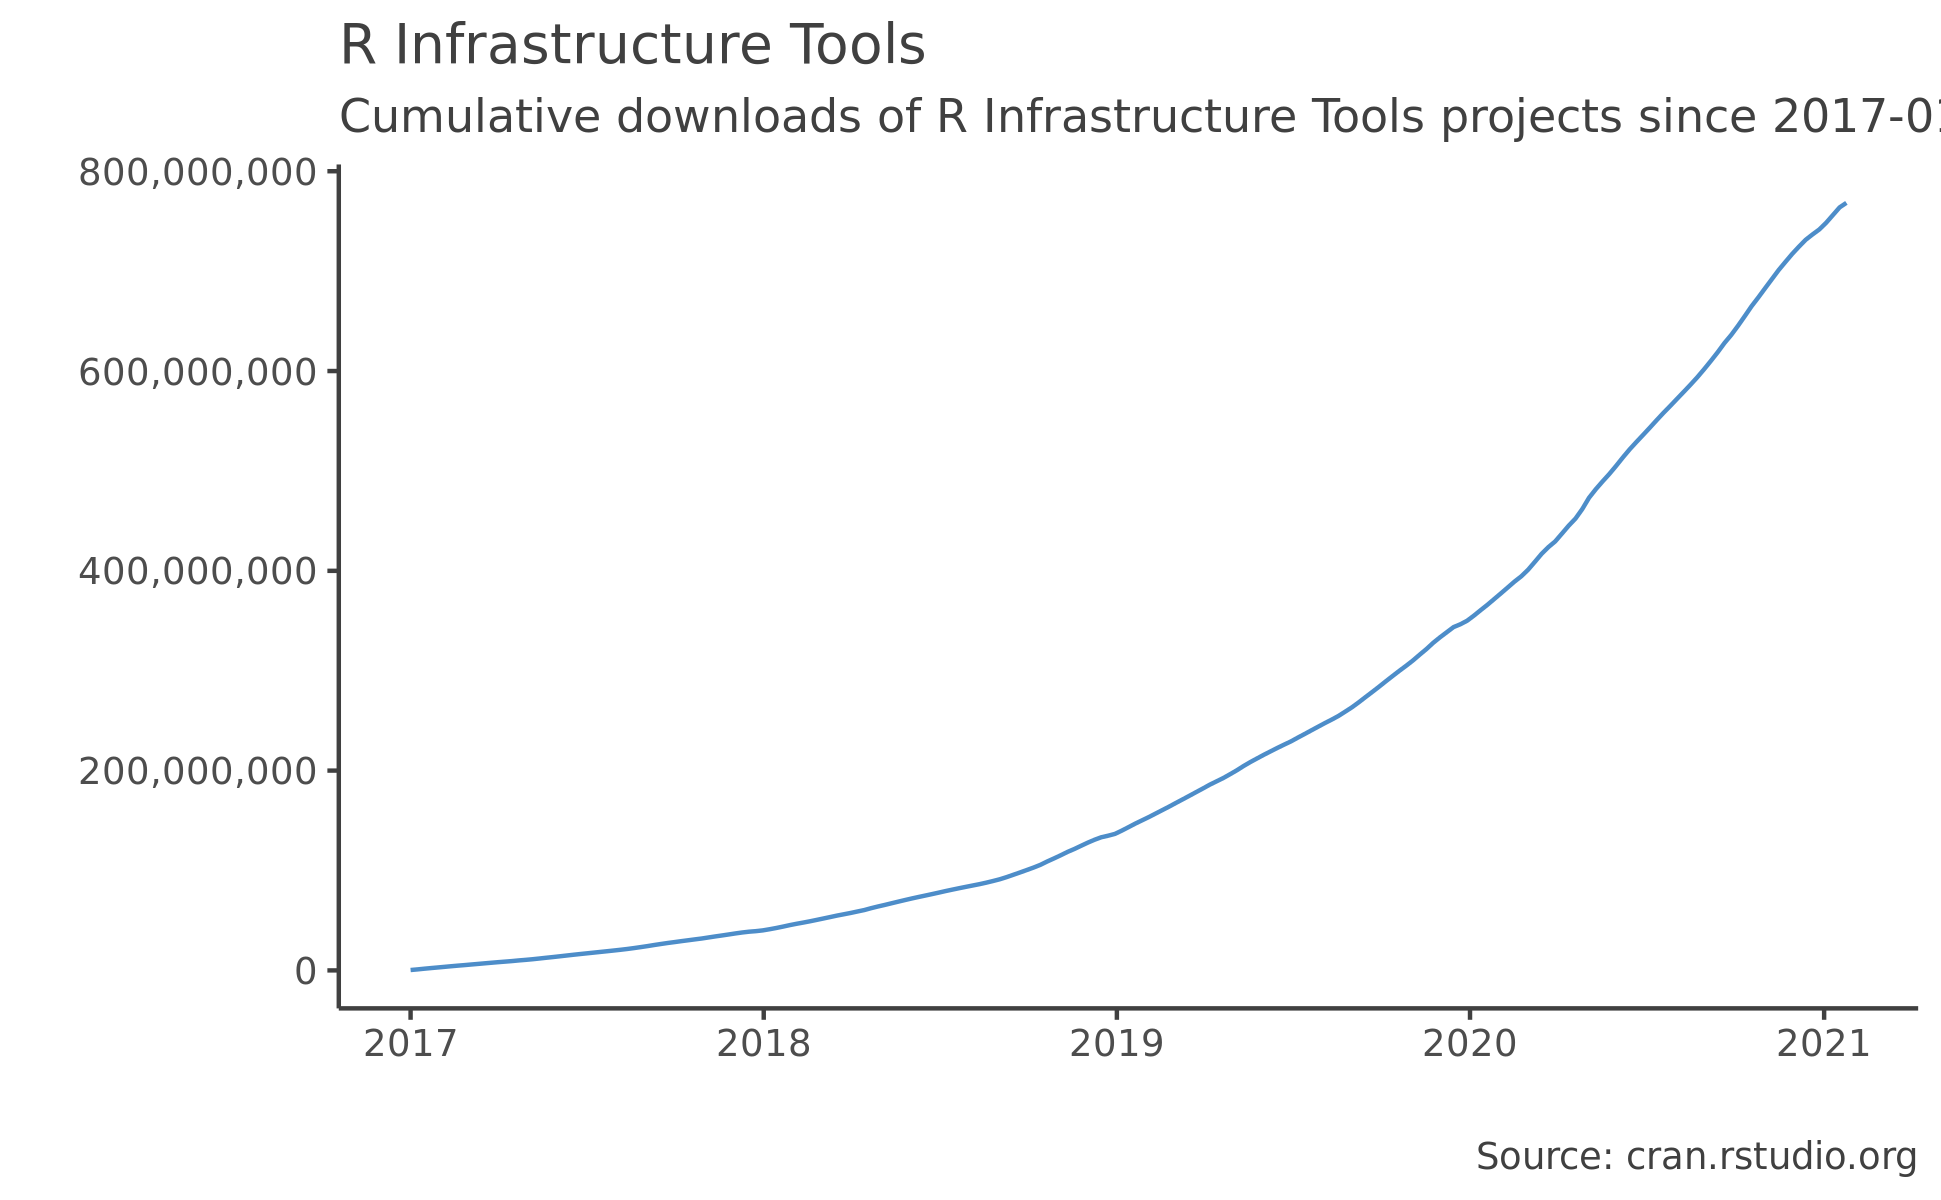 R Infrastructure Tools